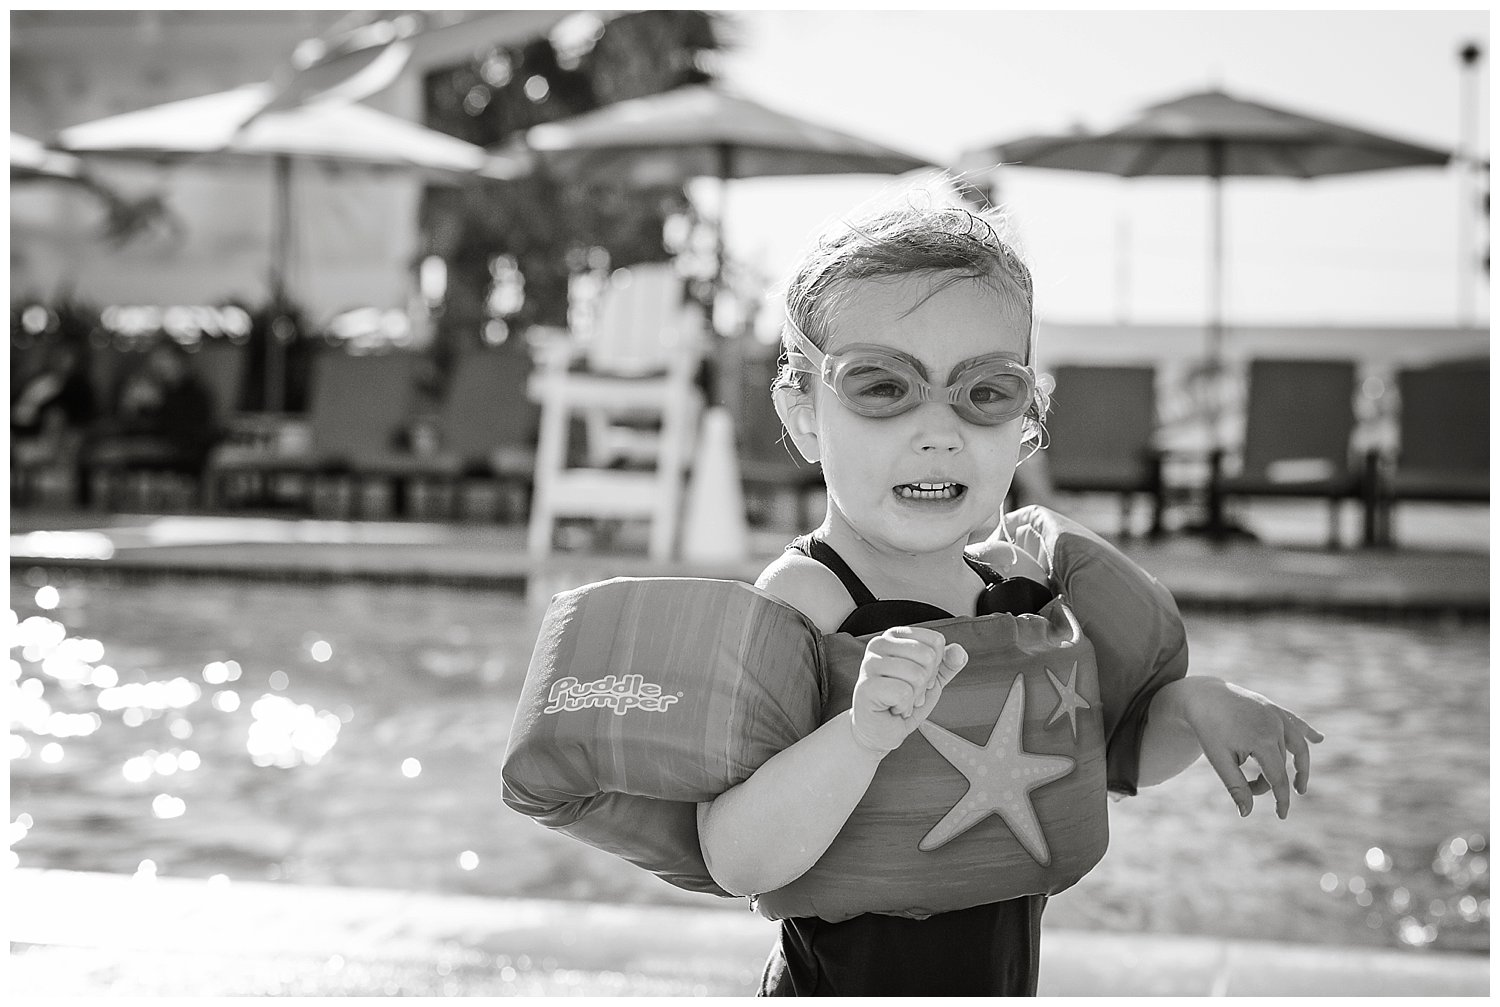 Rocking the goggles!